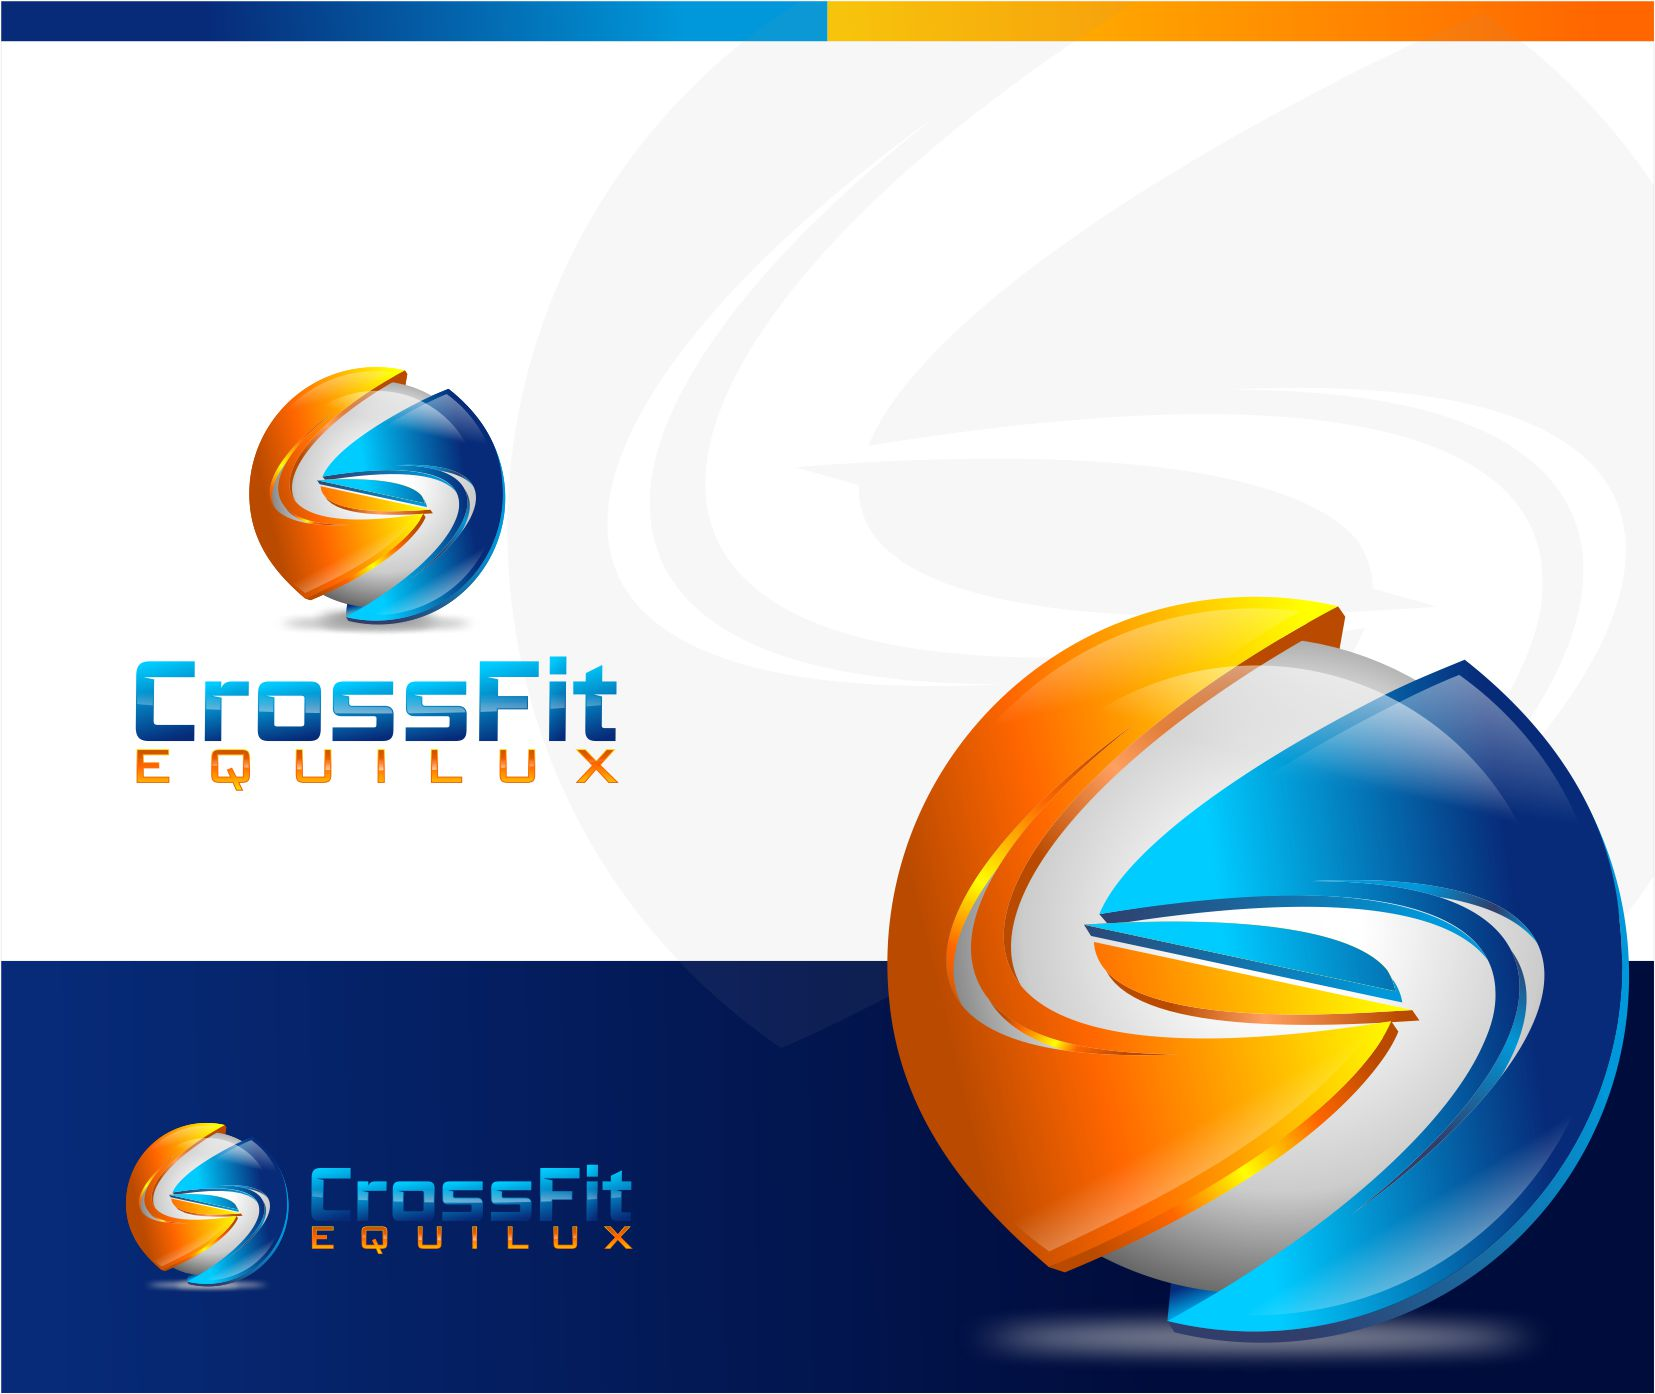 Logo Design by Raymond Garcia - Entry No. 103 in the Logo Design Contest Unique Logo Design Wanted for CrossFit Equilux.